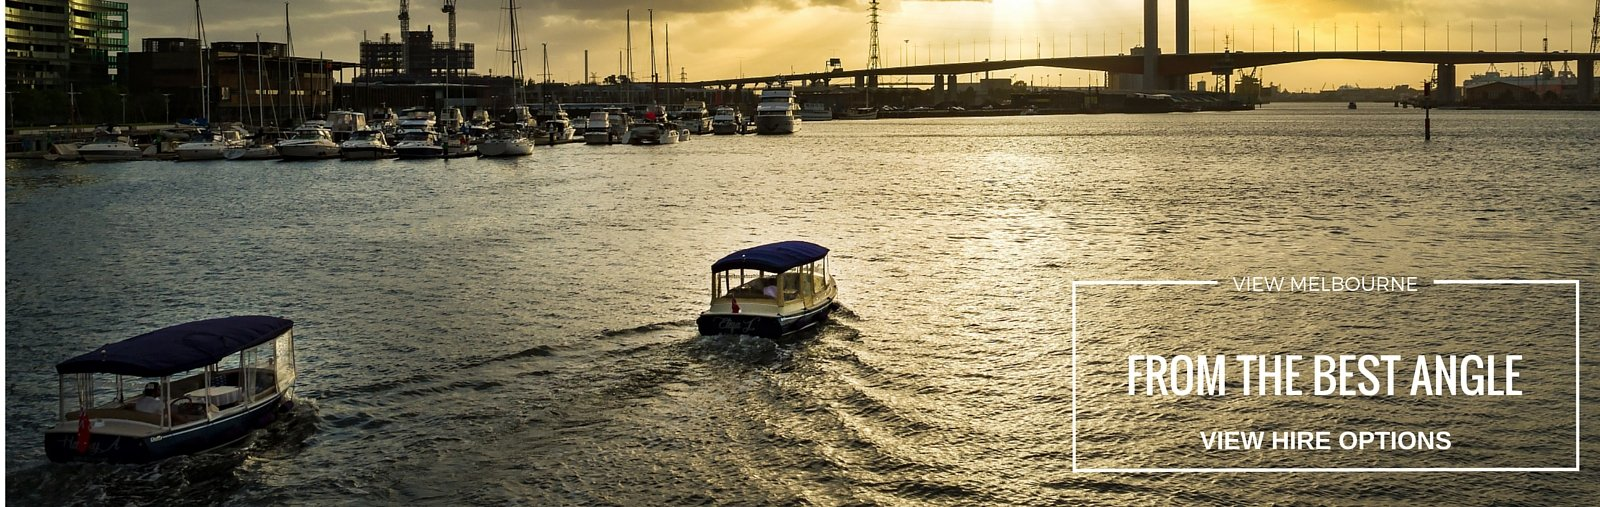 Take a sunset cruise on the Yarra River Melbourne